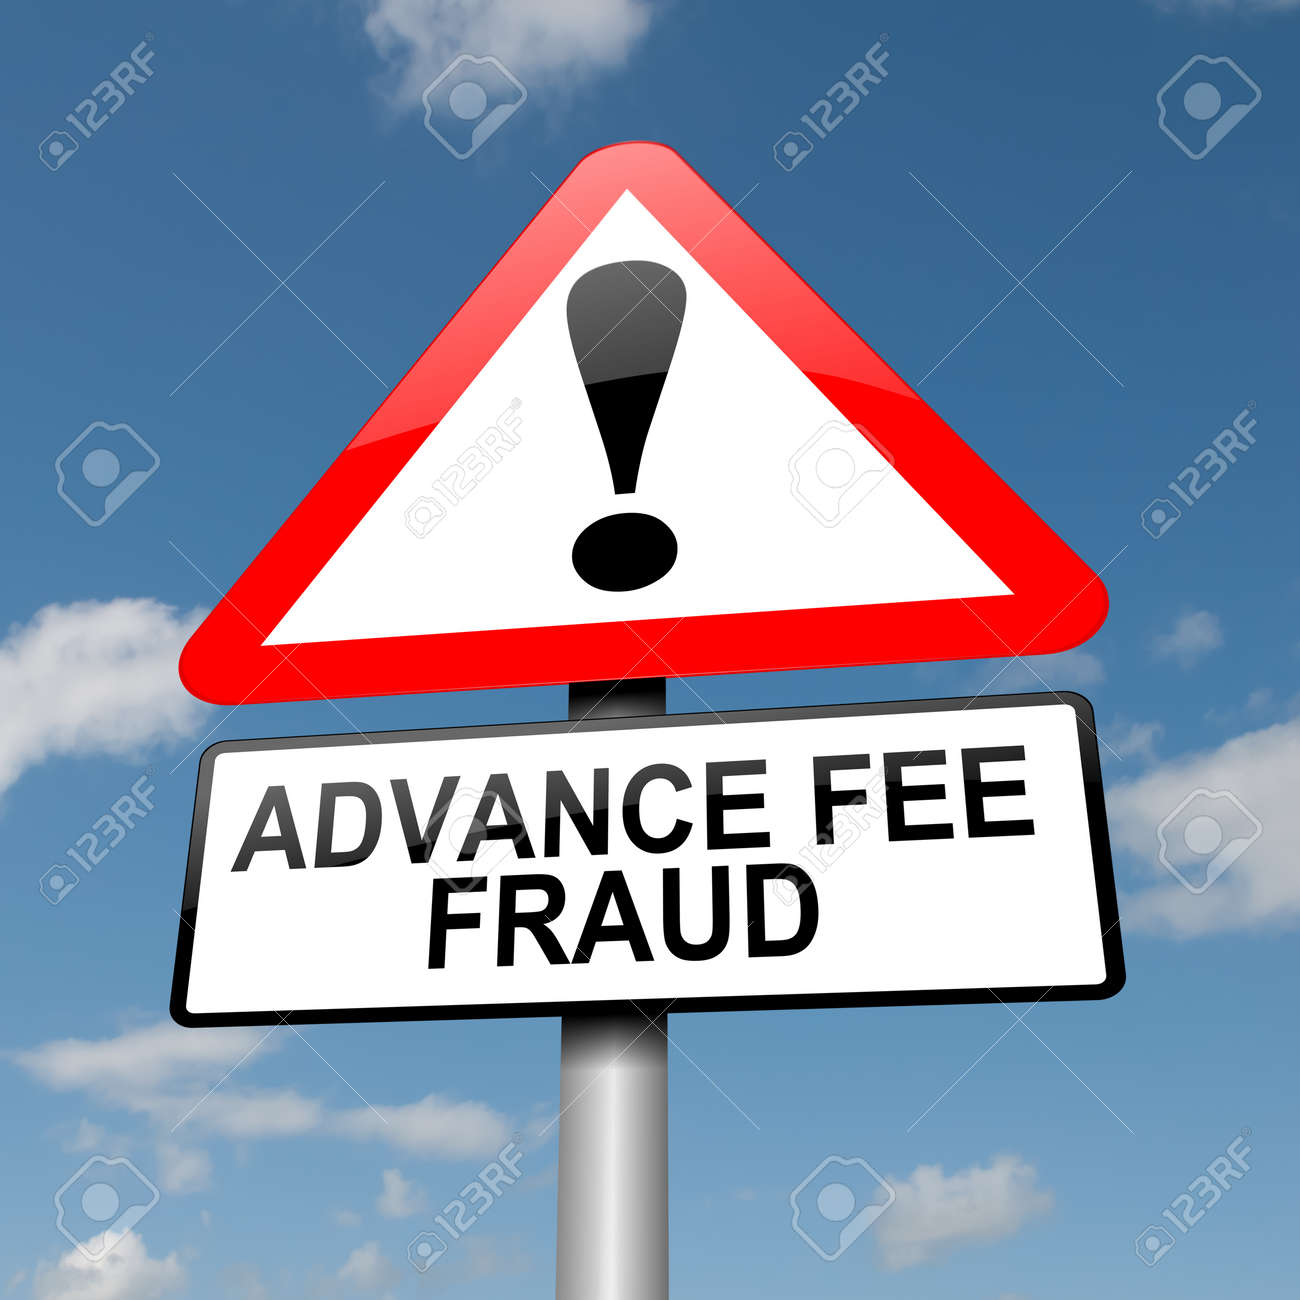 Illustration depicting a road traffic sign with an advance fee fraud  concept. Blue sky background. Stock Photo - 14033878